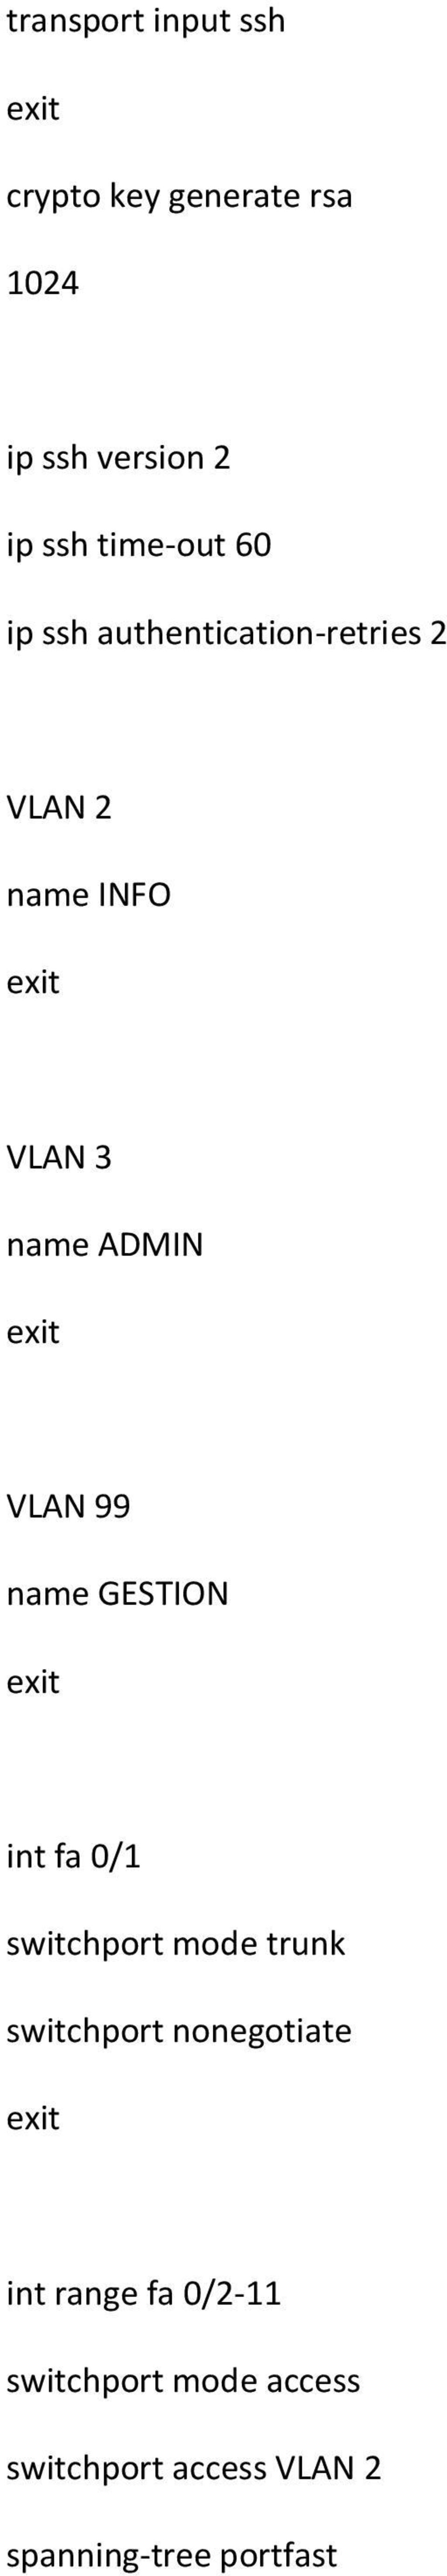 VLAN 99 name GESTION int fa 0/1 switchport mode trunk switchport nonegotiate